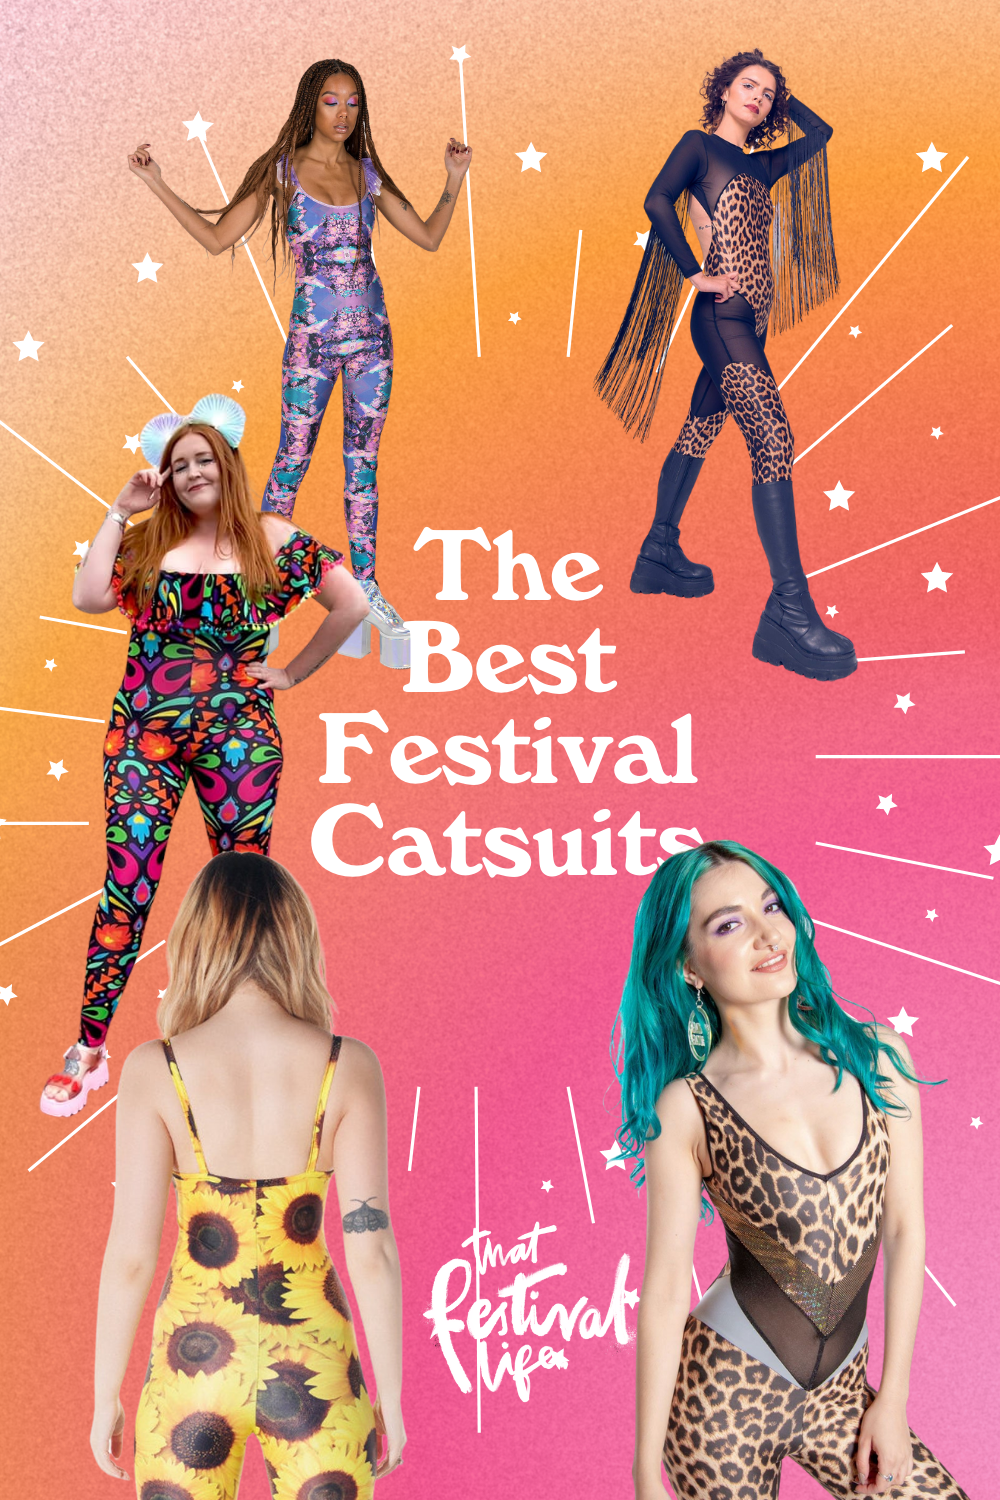 Festival Season Catsuit buying guide